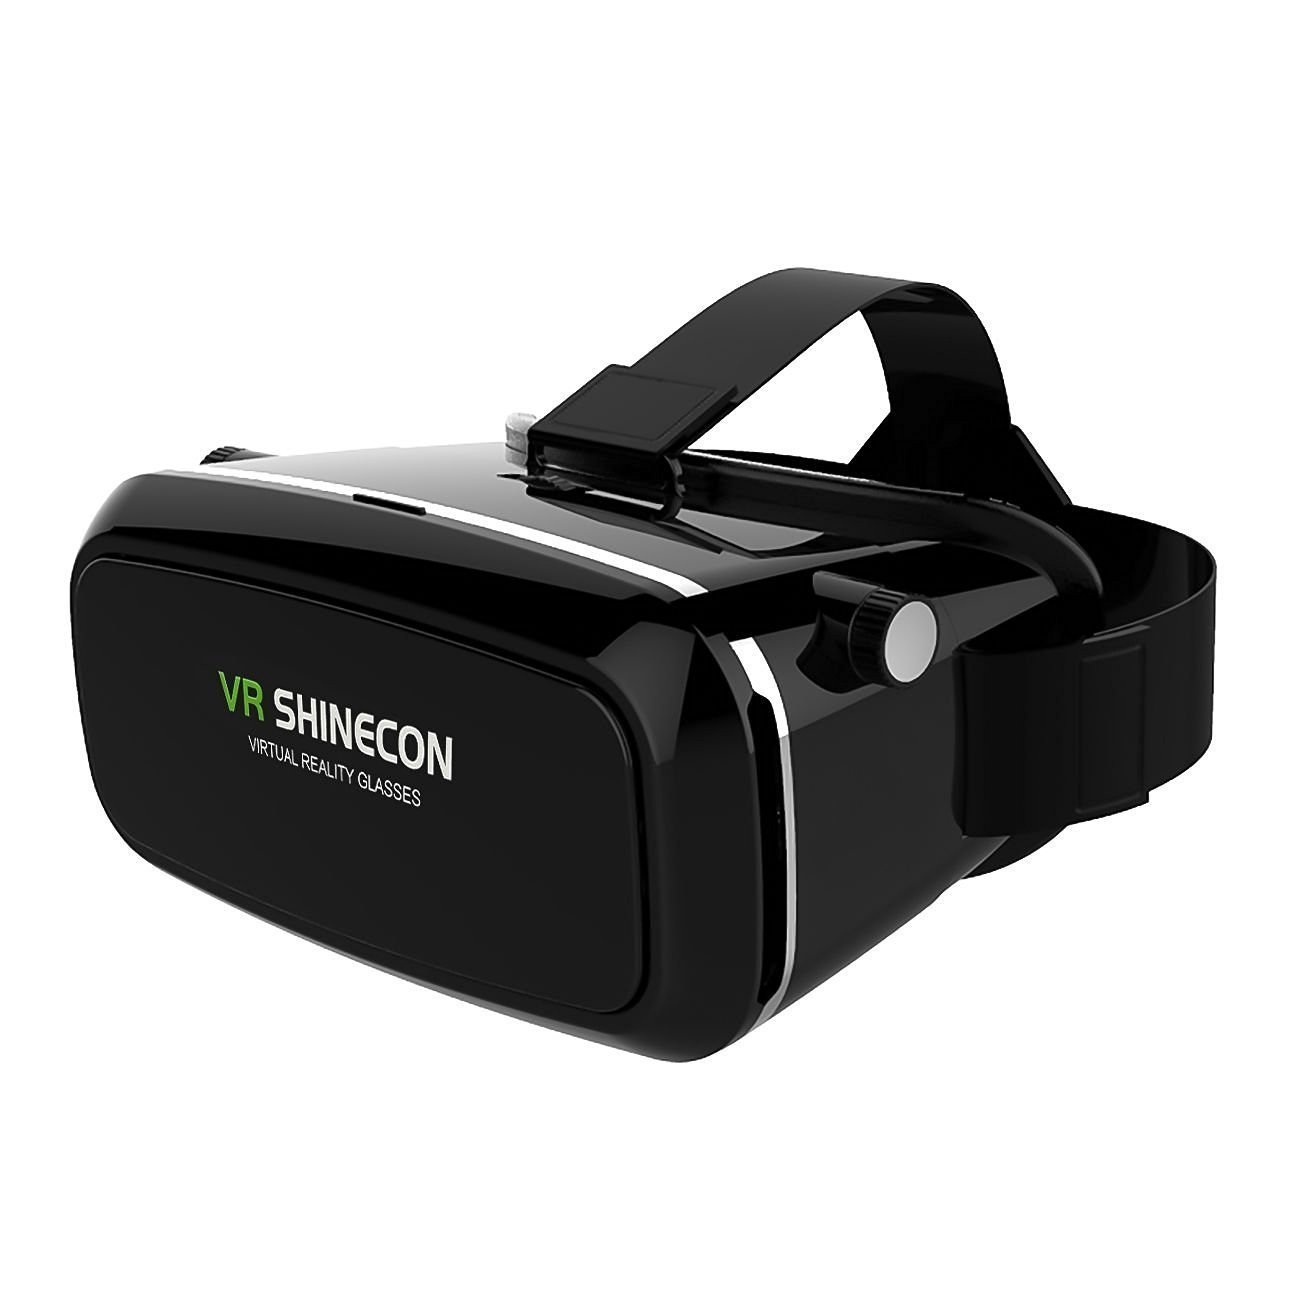 """3D VR SHINECON Virtual Reality Immersive Glasses Headset with Adjustable Strap for 3D Videos Movies Games Compatible Most 3.5""""-6.0"""" iPhone, Samsung, HTC, LG, Sony, Huawei, Moto Smartphone (Black)"""